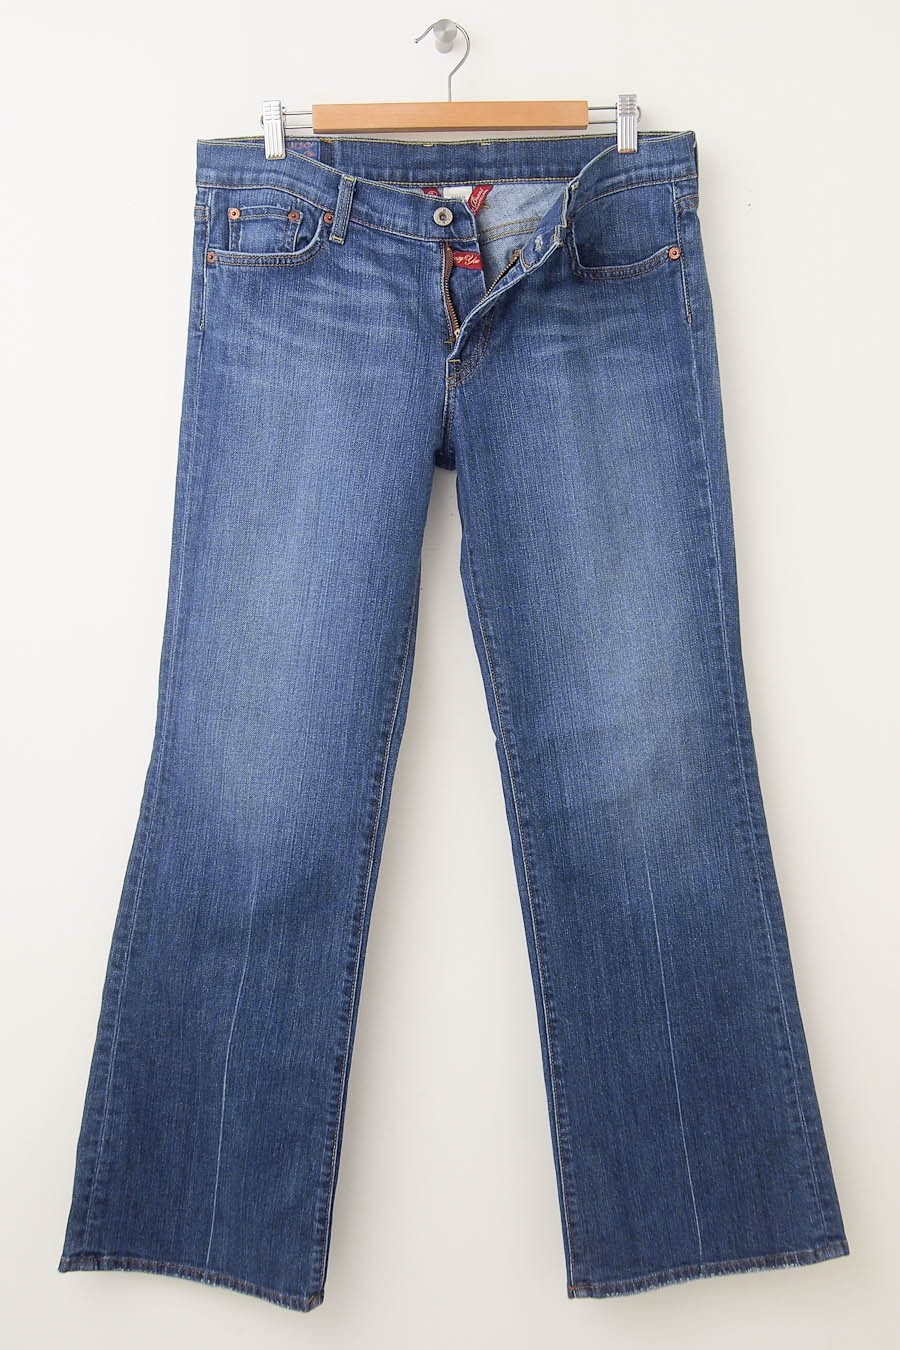 See all results for men's shorts Levi's Men's Loose Straight Denim Short. by Levi's. $ - $ $ 18 $ 45 00 Prime. FREE Shipping on eligible orders. Some sizes/colors are Prime eligible. out of 5 stars